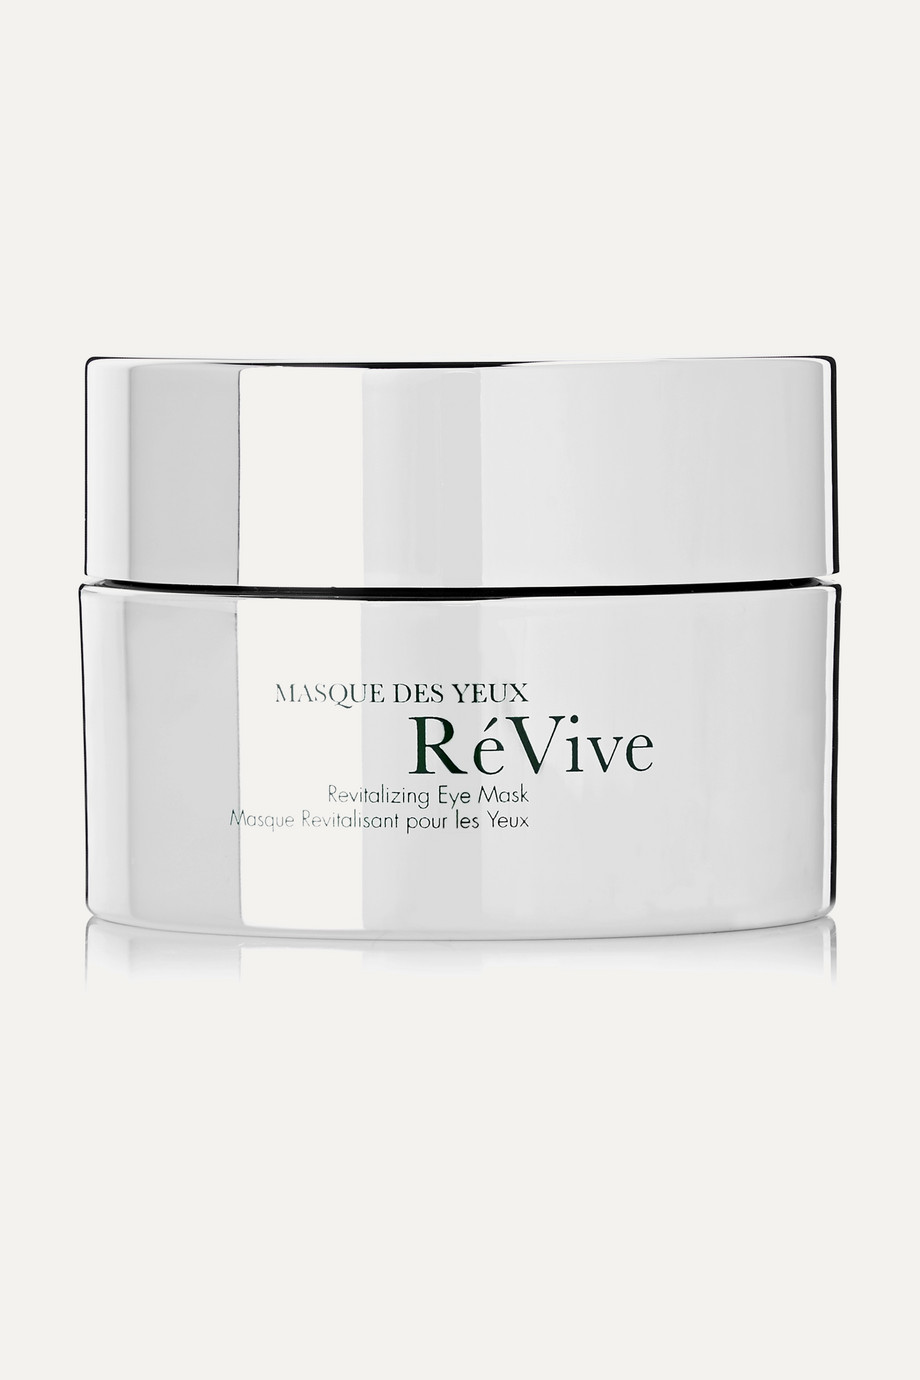 RéVive Revitalizing Eye Mask, 30ml